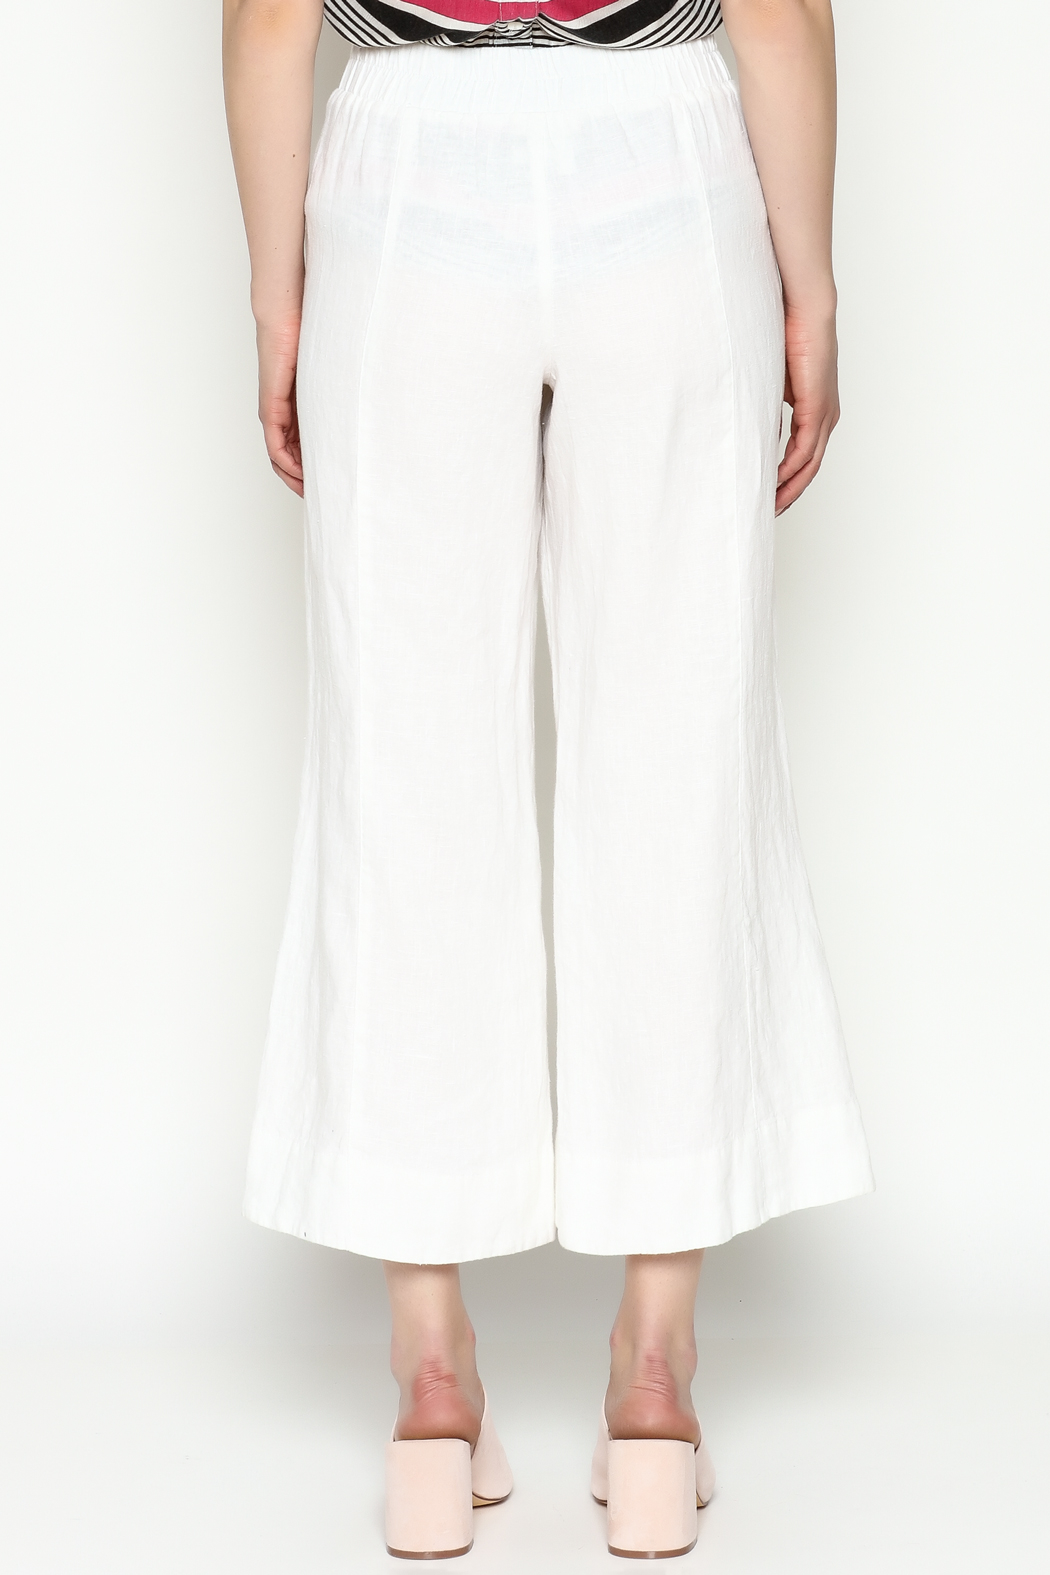 Cousin Earl White Linen Pants - Back Cropped Image